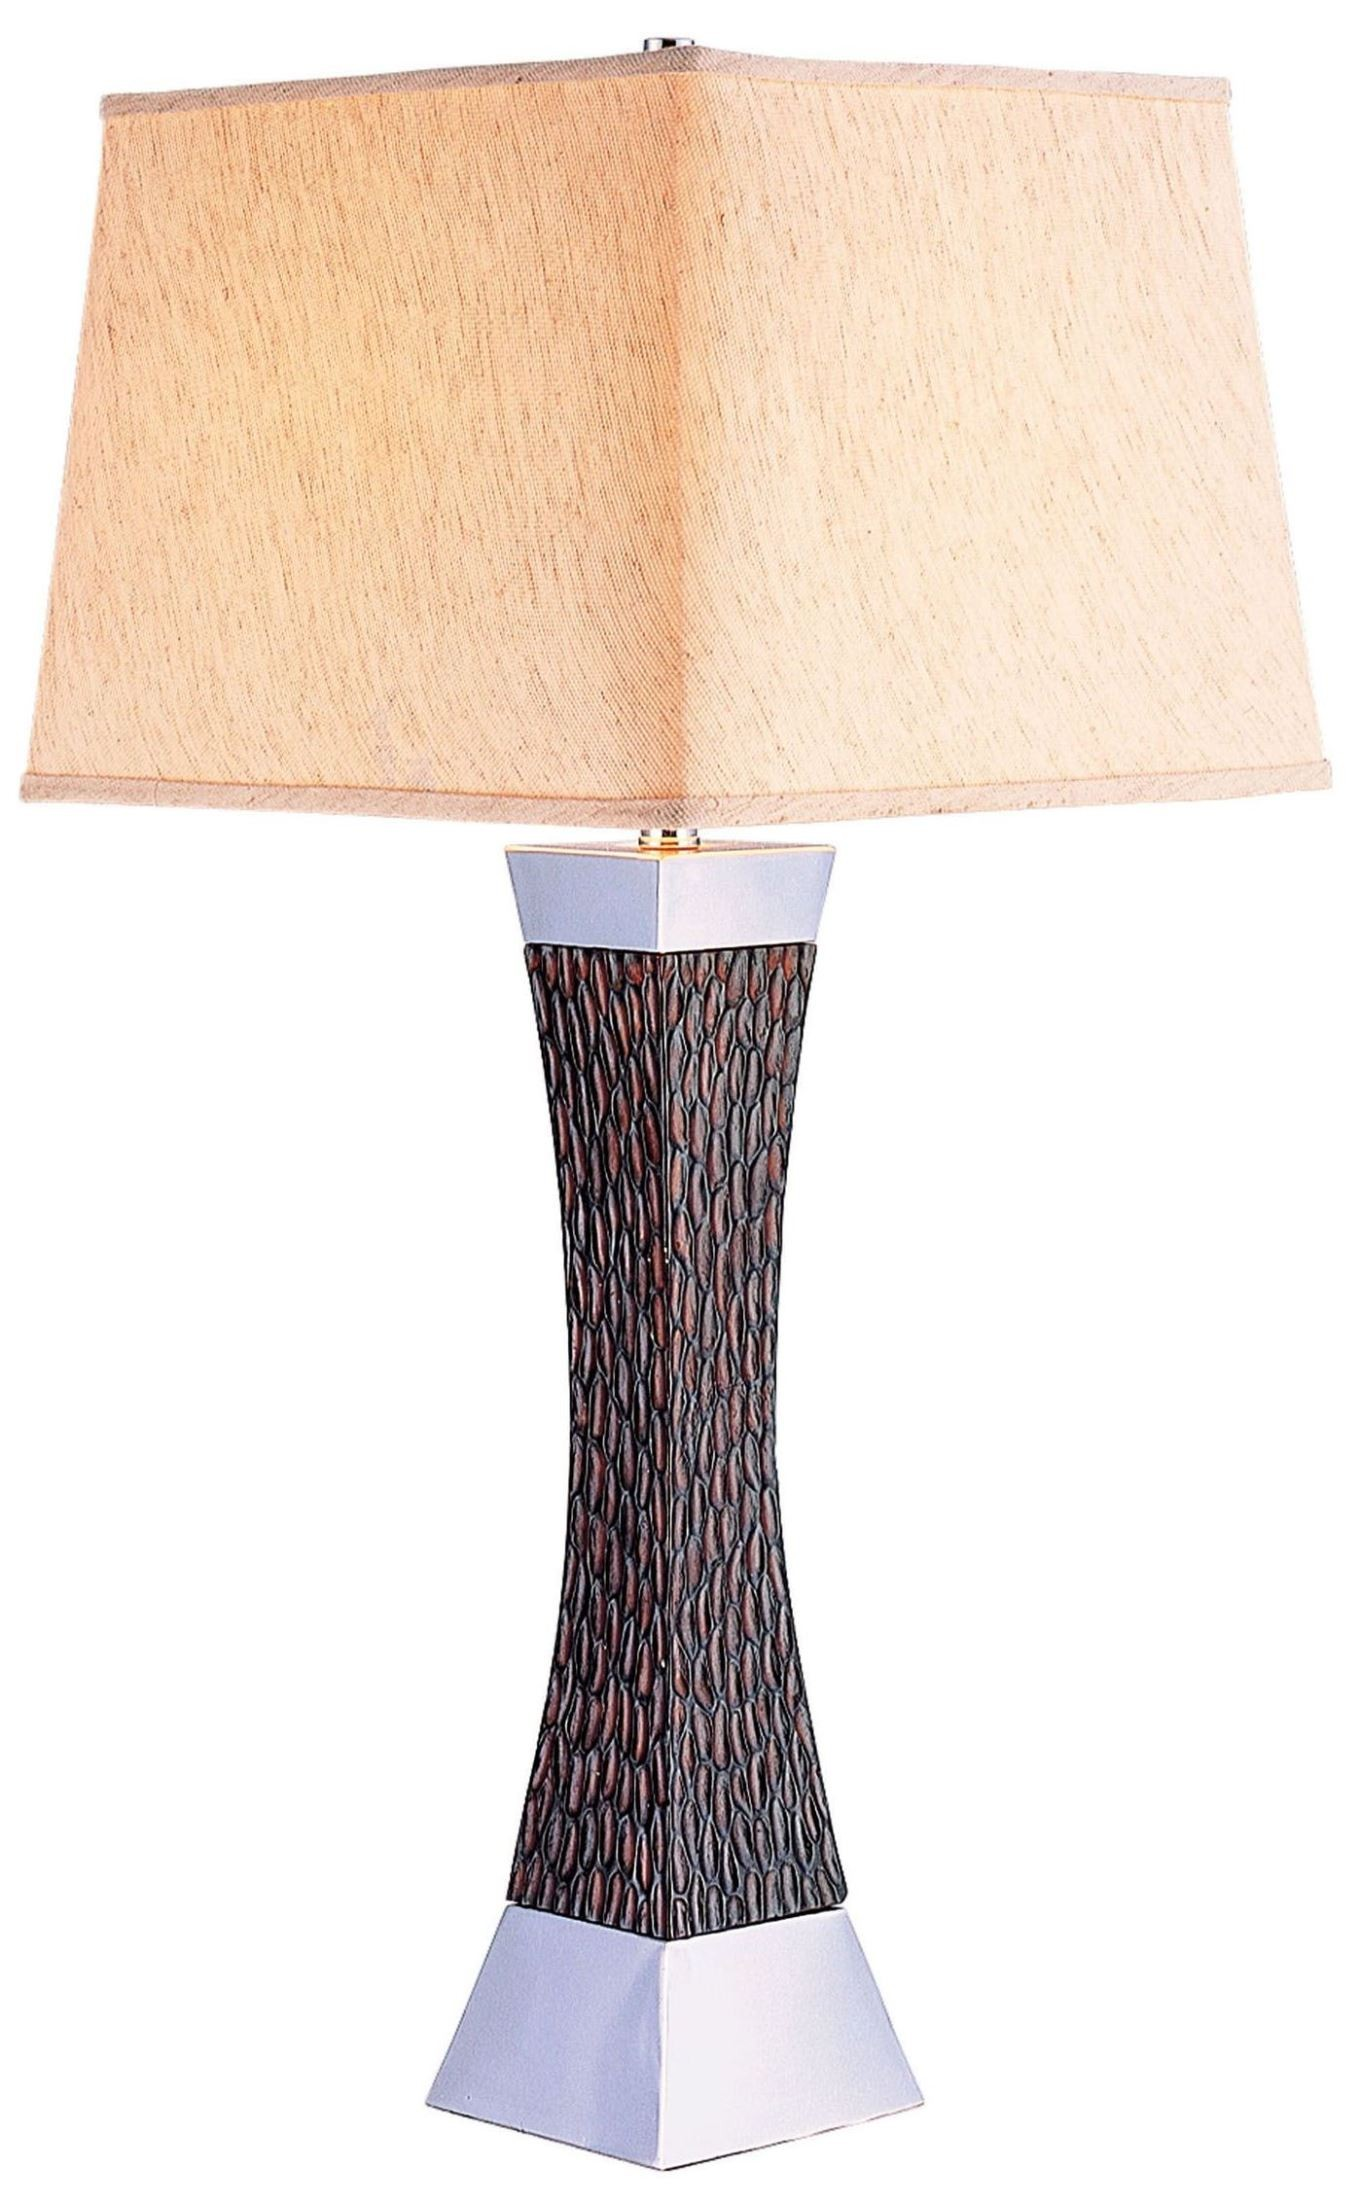 pandora dark wood table lamp from furniture of america l94179t coleman furniture. Black Bedroom Furniture Sets. Home Design Ideas